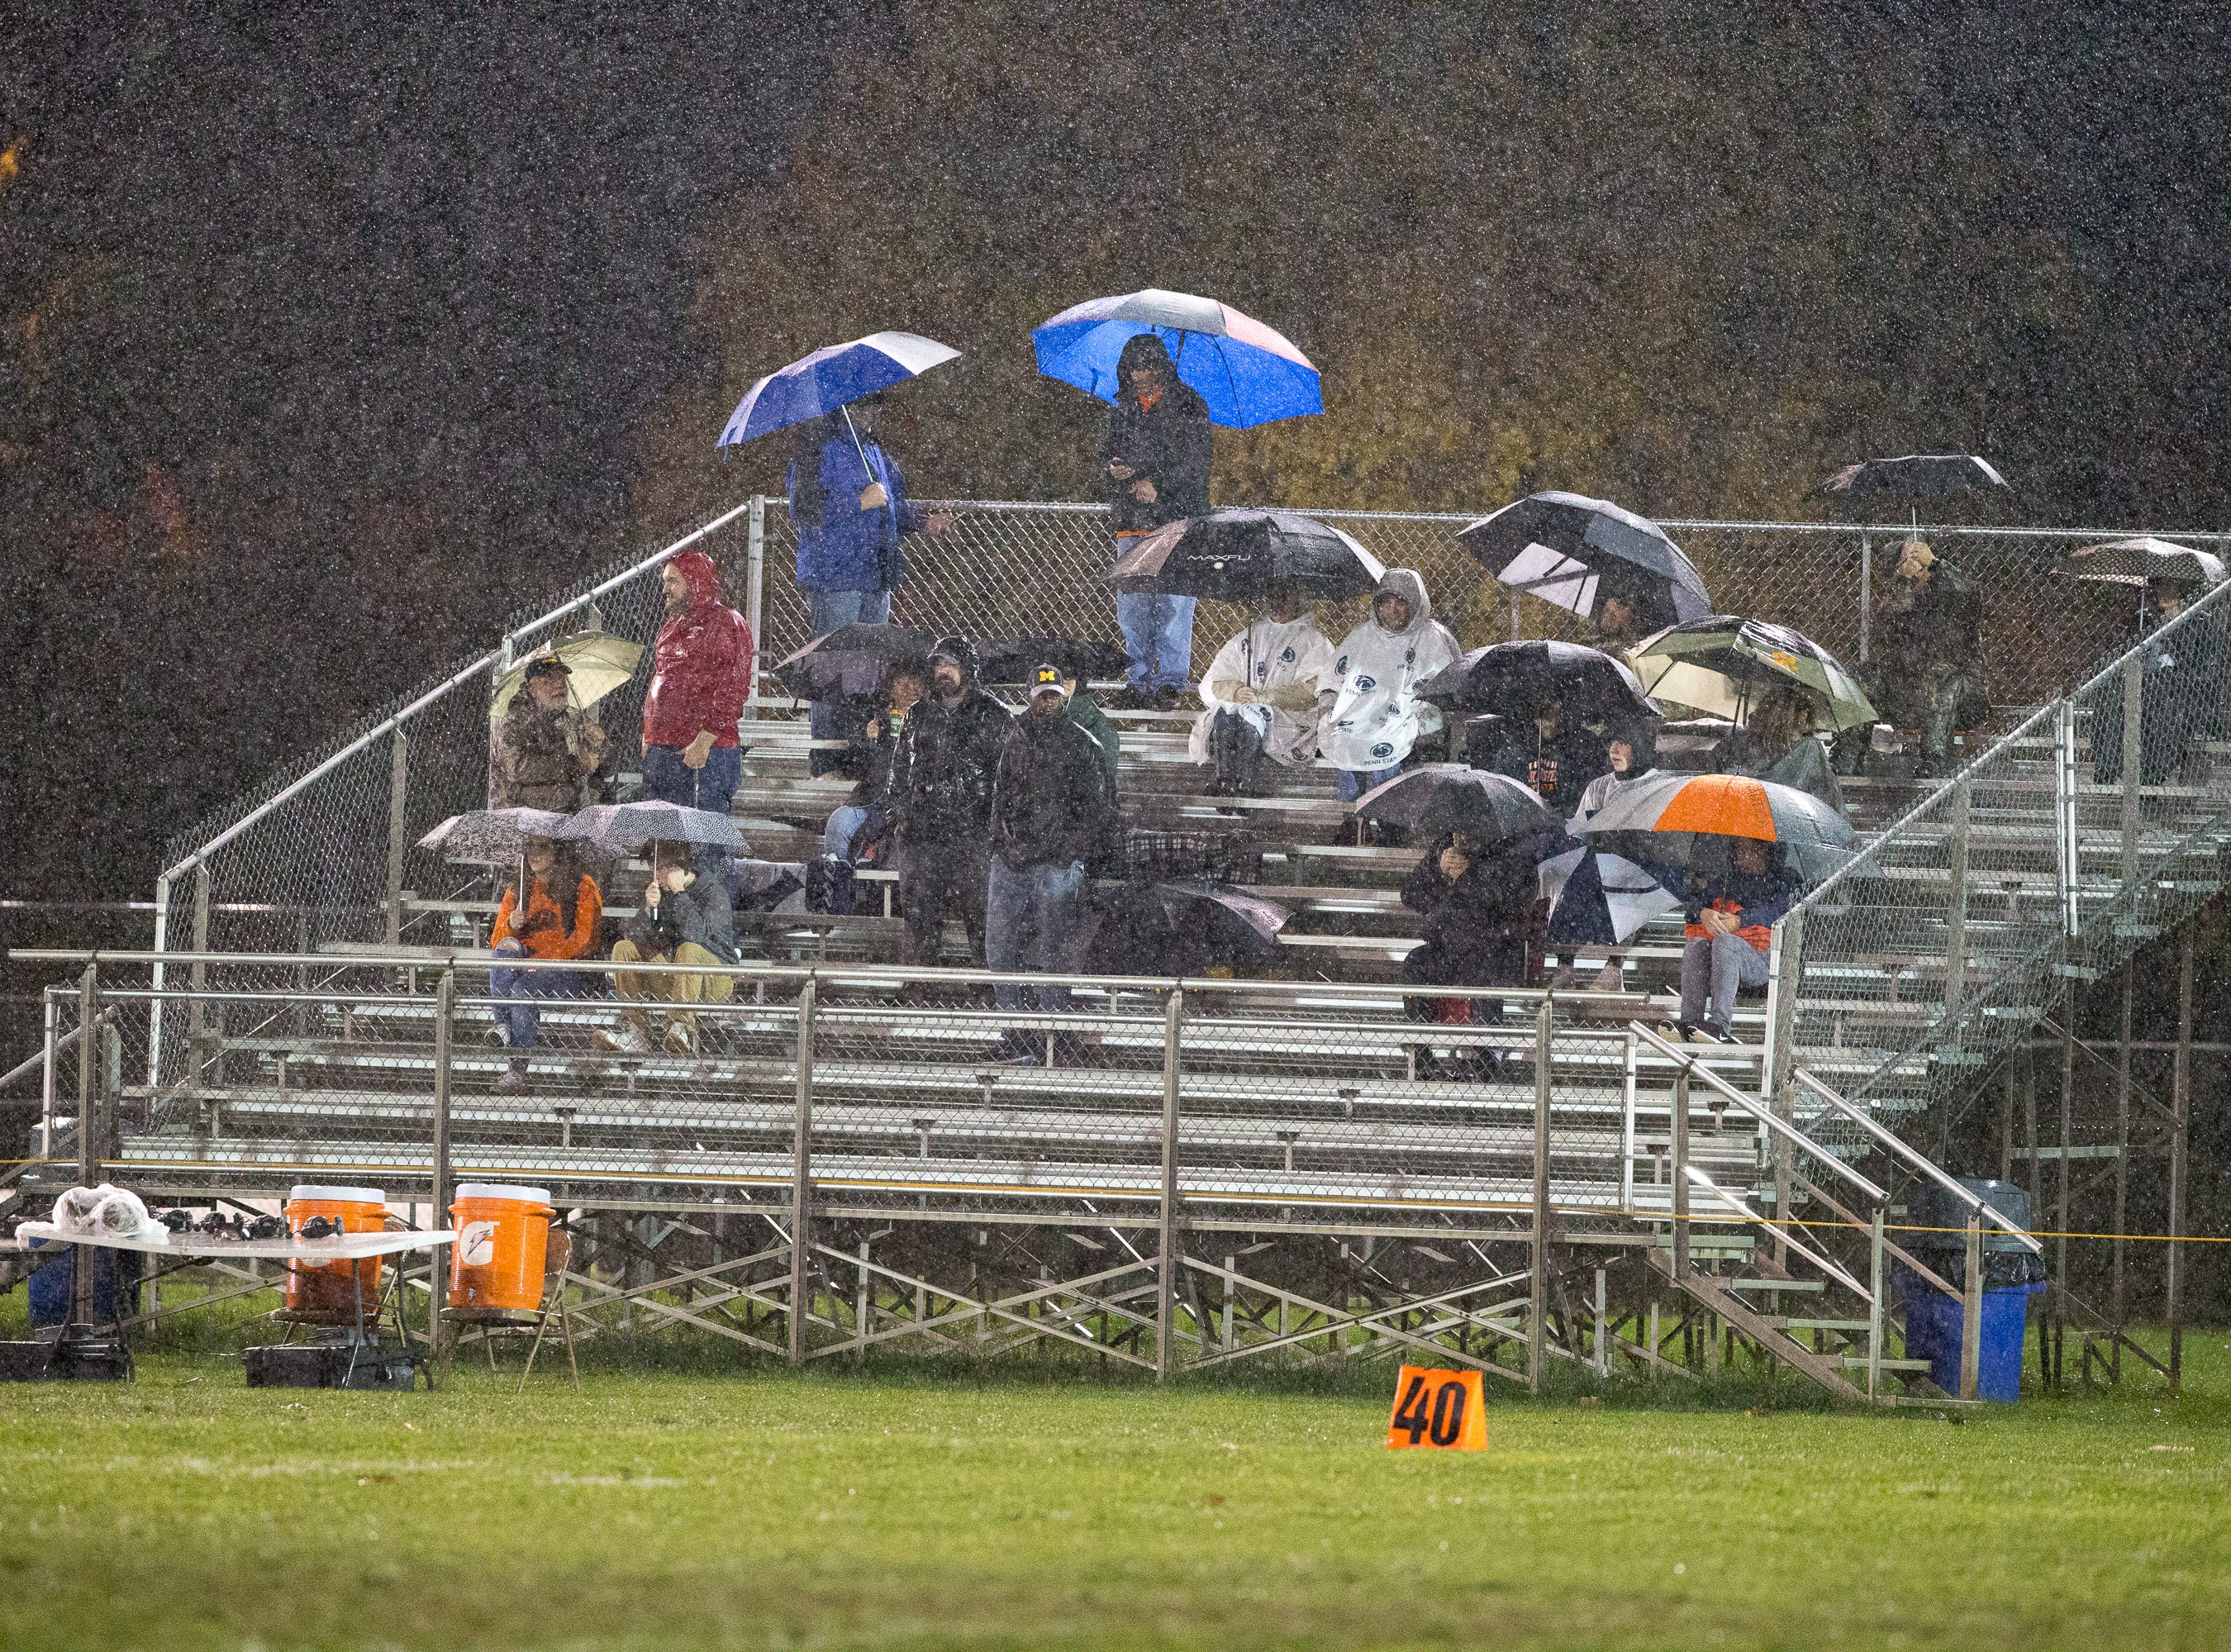 Dedicated fans battle the rain. The Shippensburg Greyhounds beat Northeastern 6-0 in a playoff game on Friday, Nov. 2, 2018.